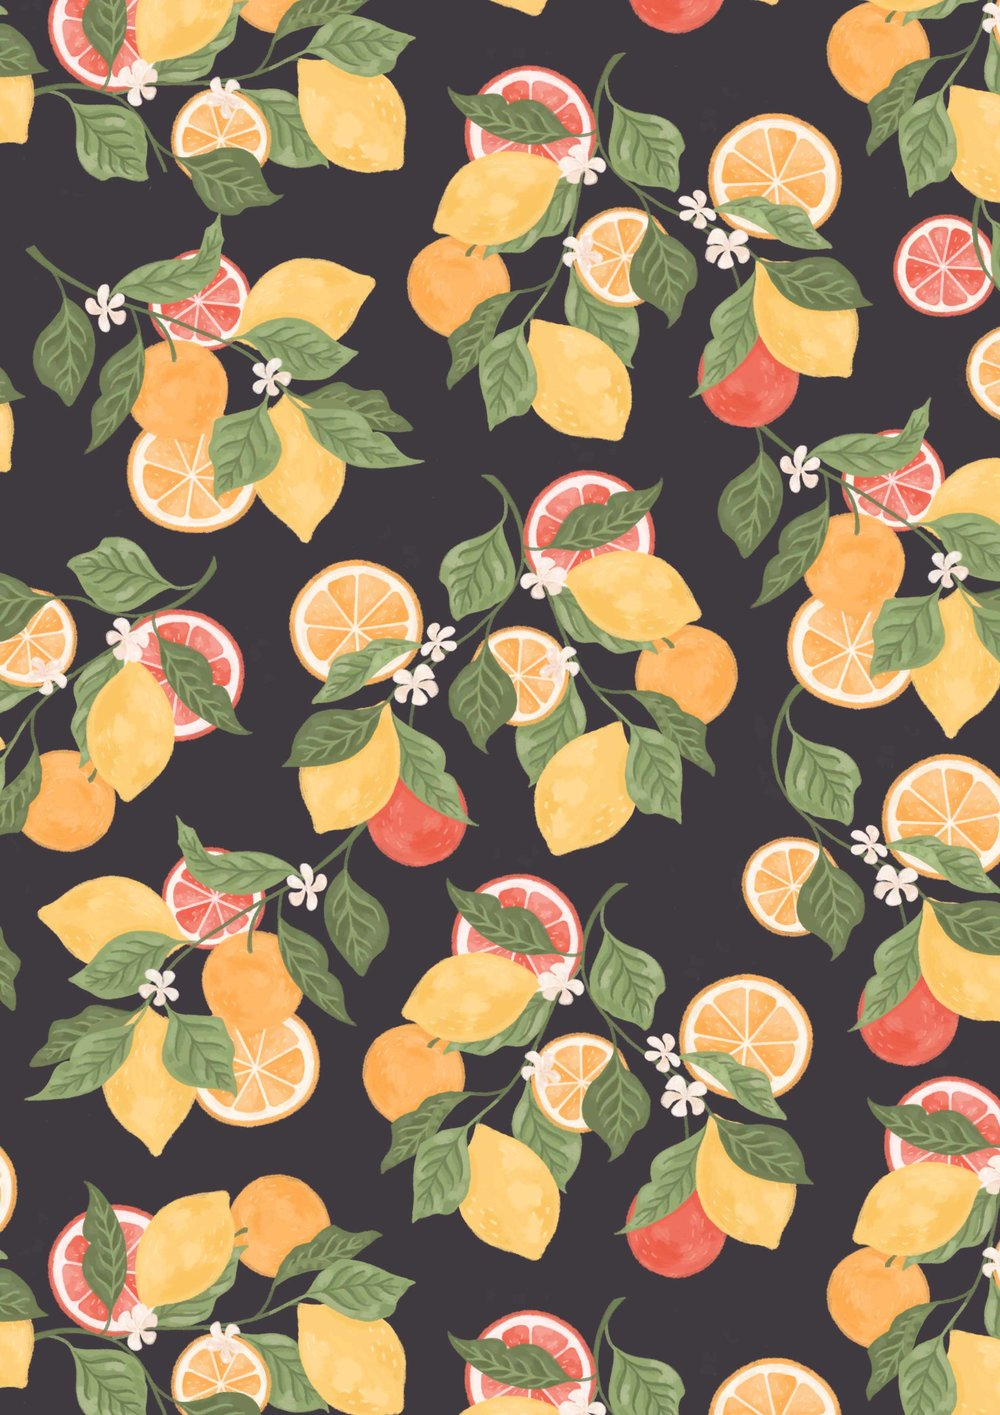 Illustrated pattern of citrus fruits and flowers, vibrant colours on a dark background.